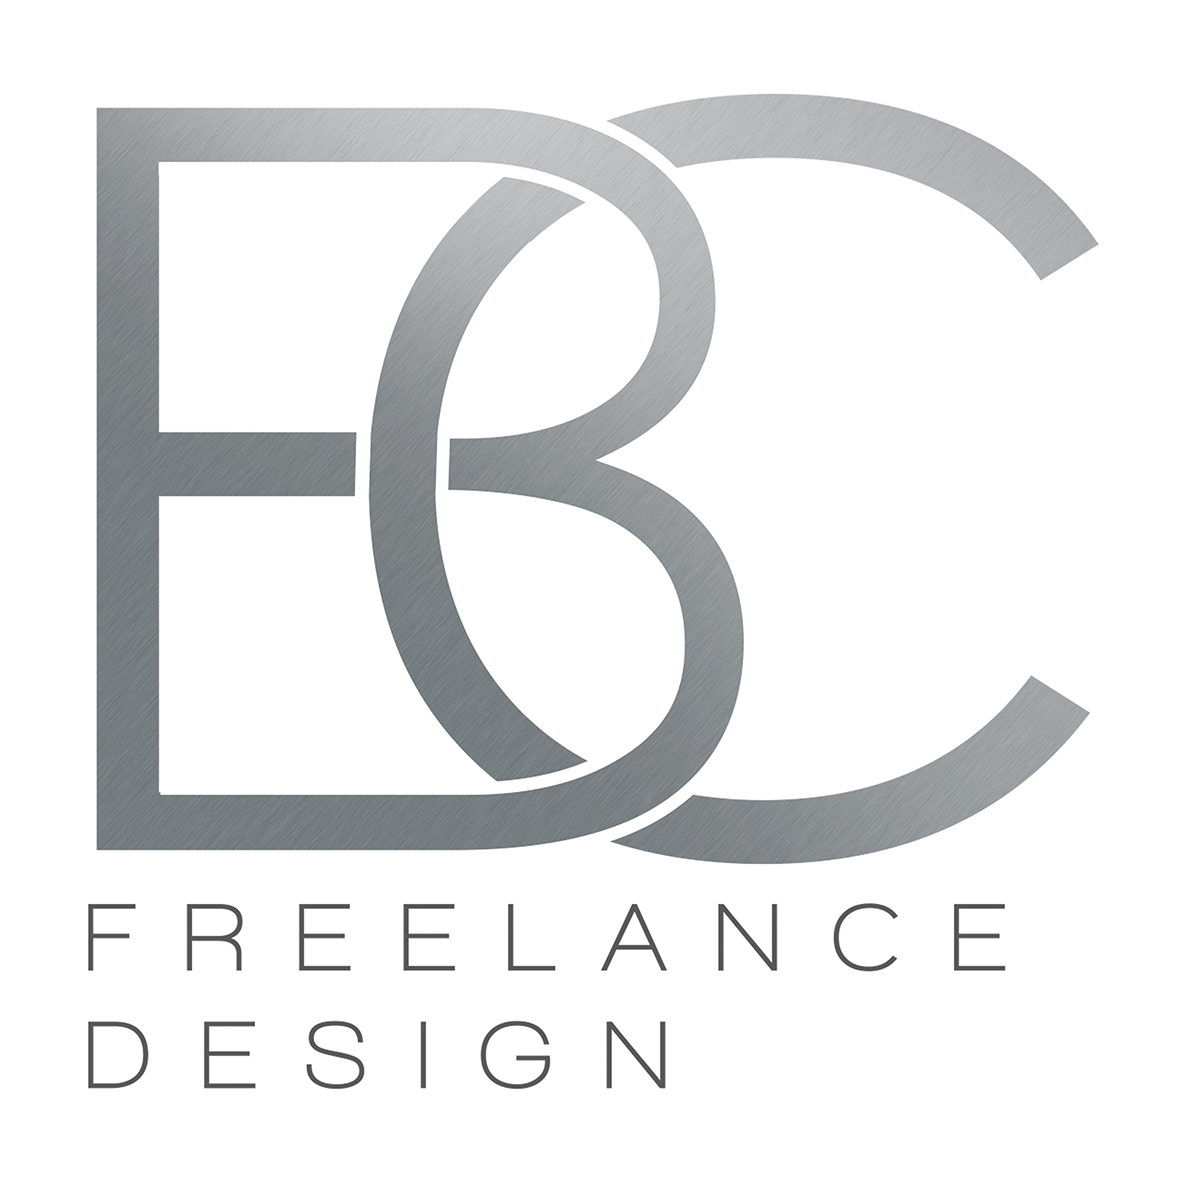 BC freelance design - Geraldton Accommodation